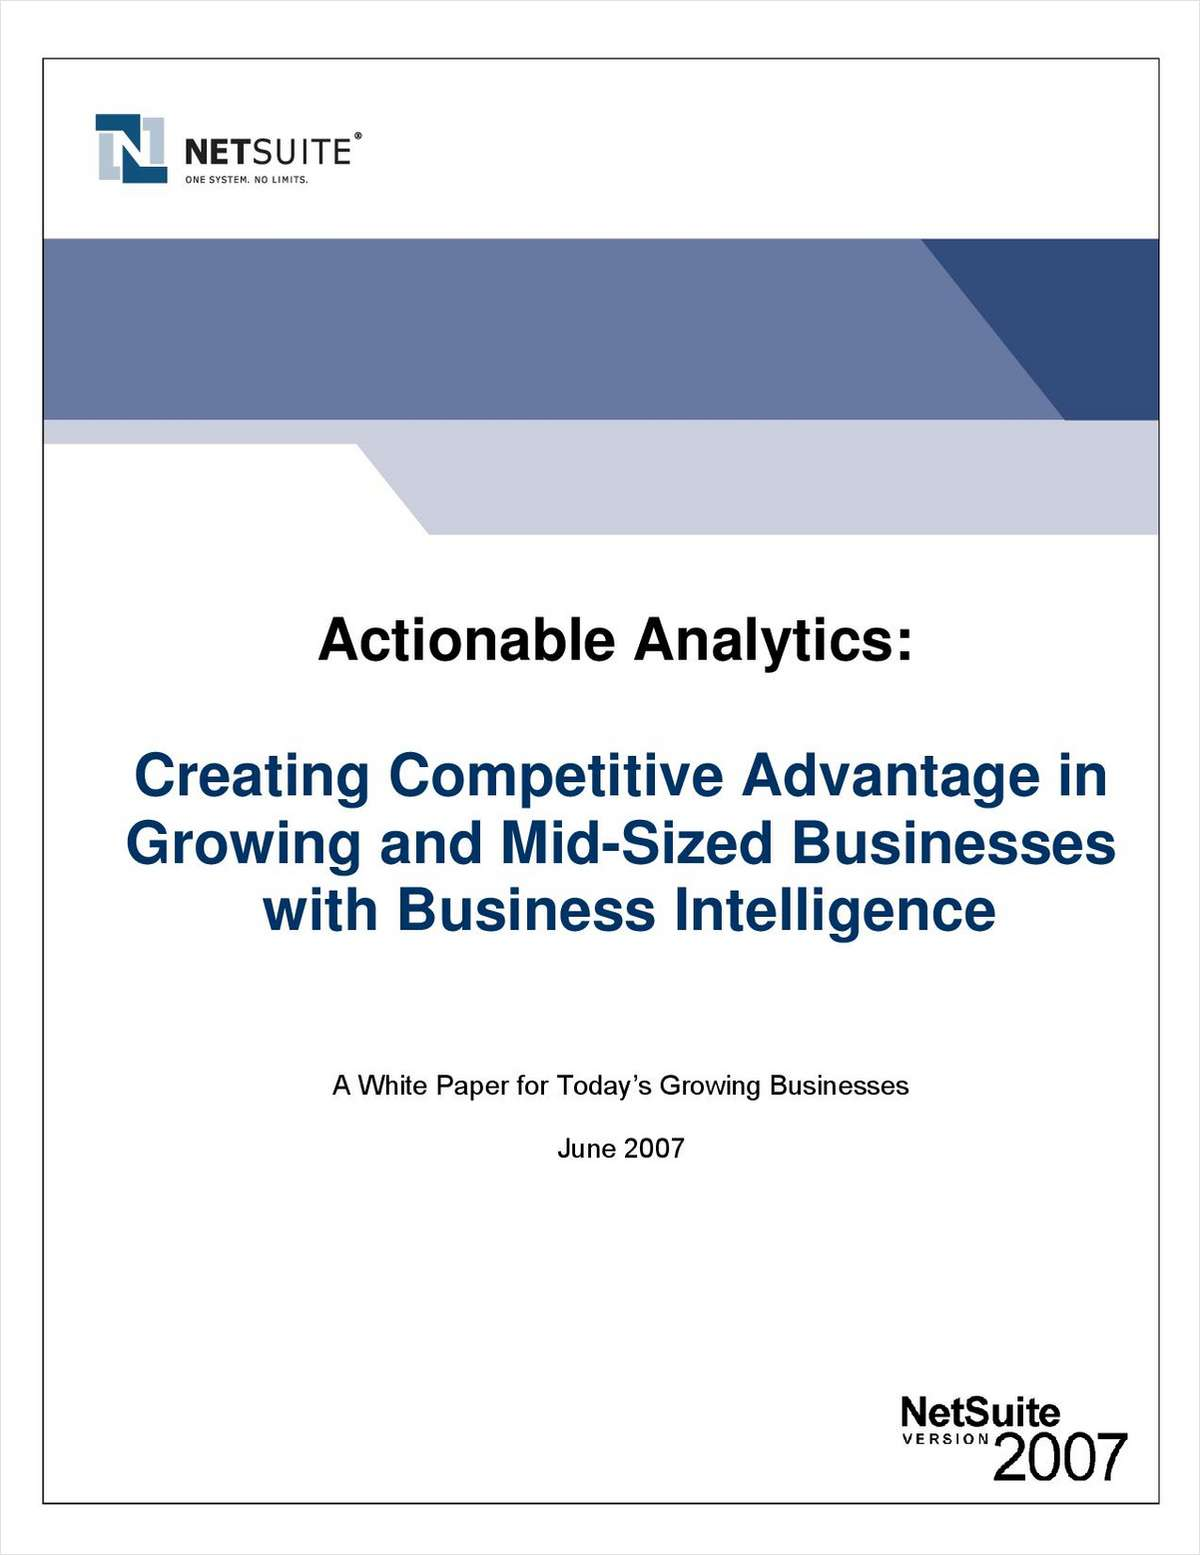 Creating Competitive Advantage in Growing and Mid-Sized Businesses with Business Intelligence